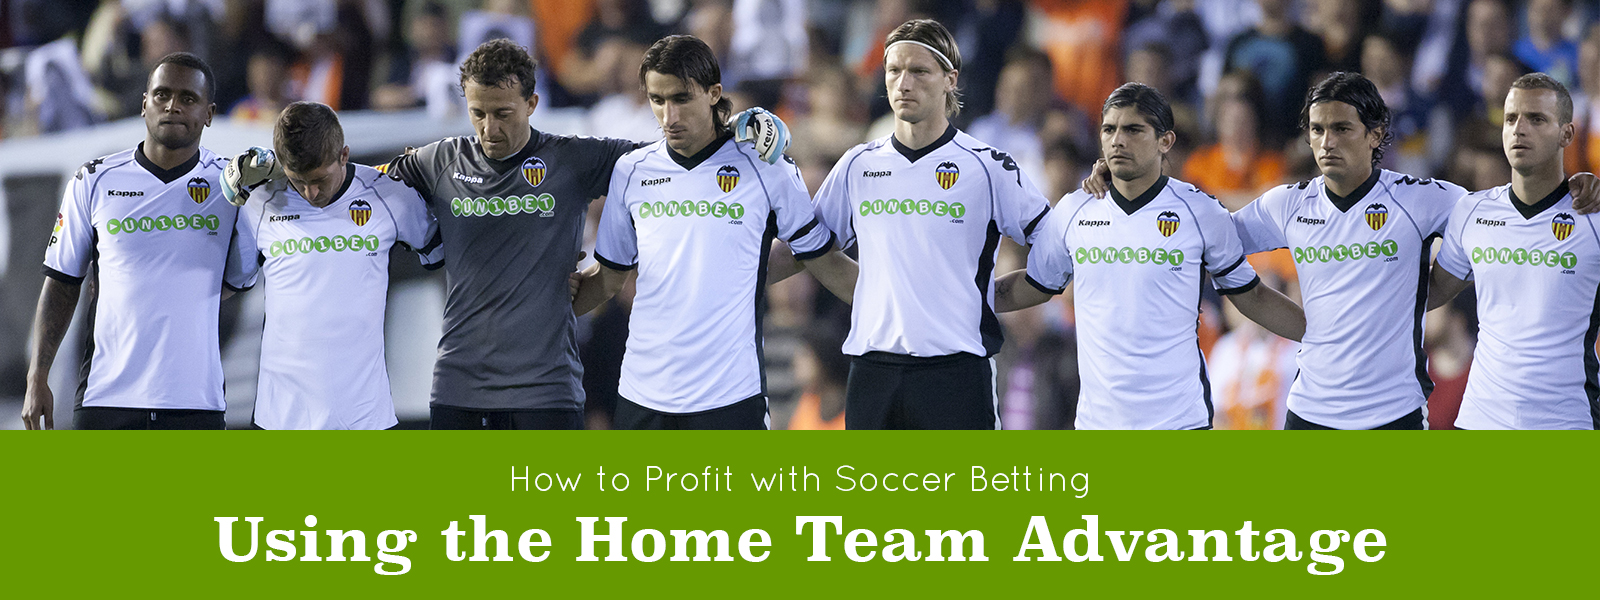 How to Profit with Soccer Betting Using the Home Team Advantage